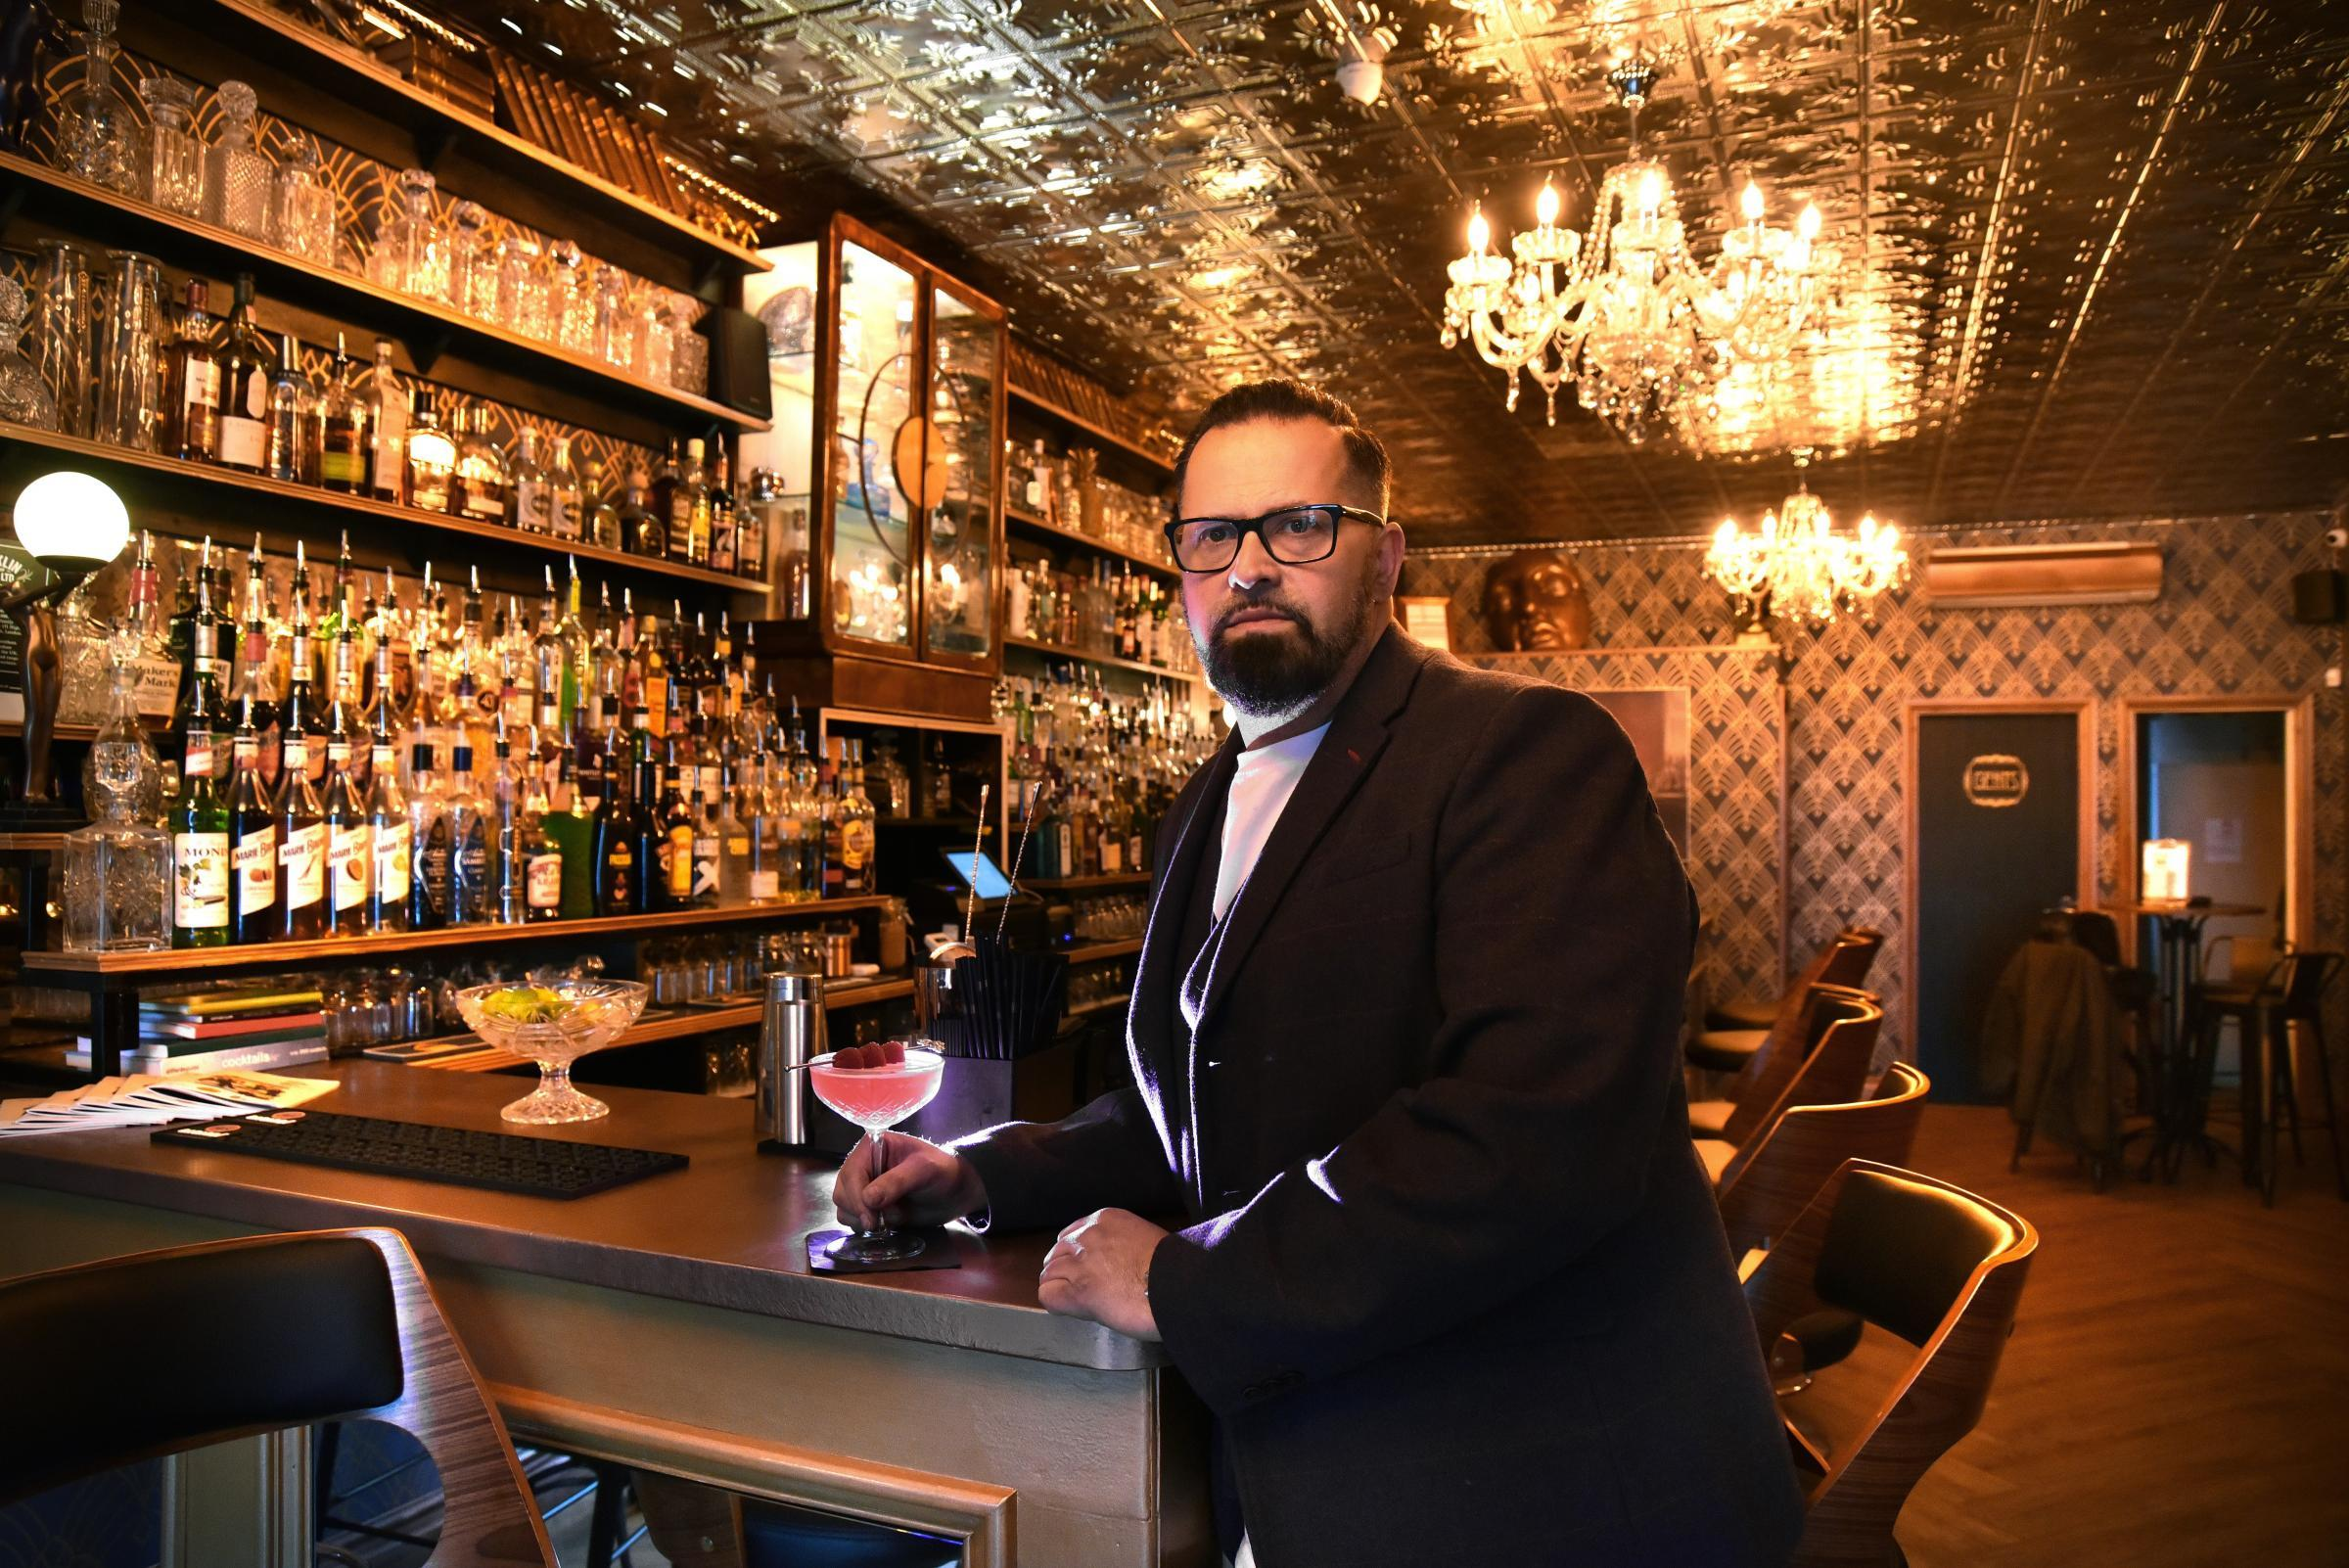 Art-deco cocktail bar 99 & Main in Bingley could expand